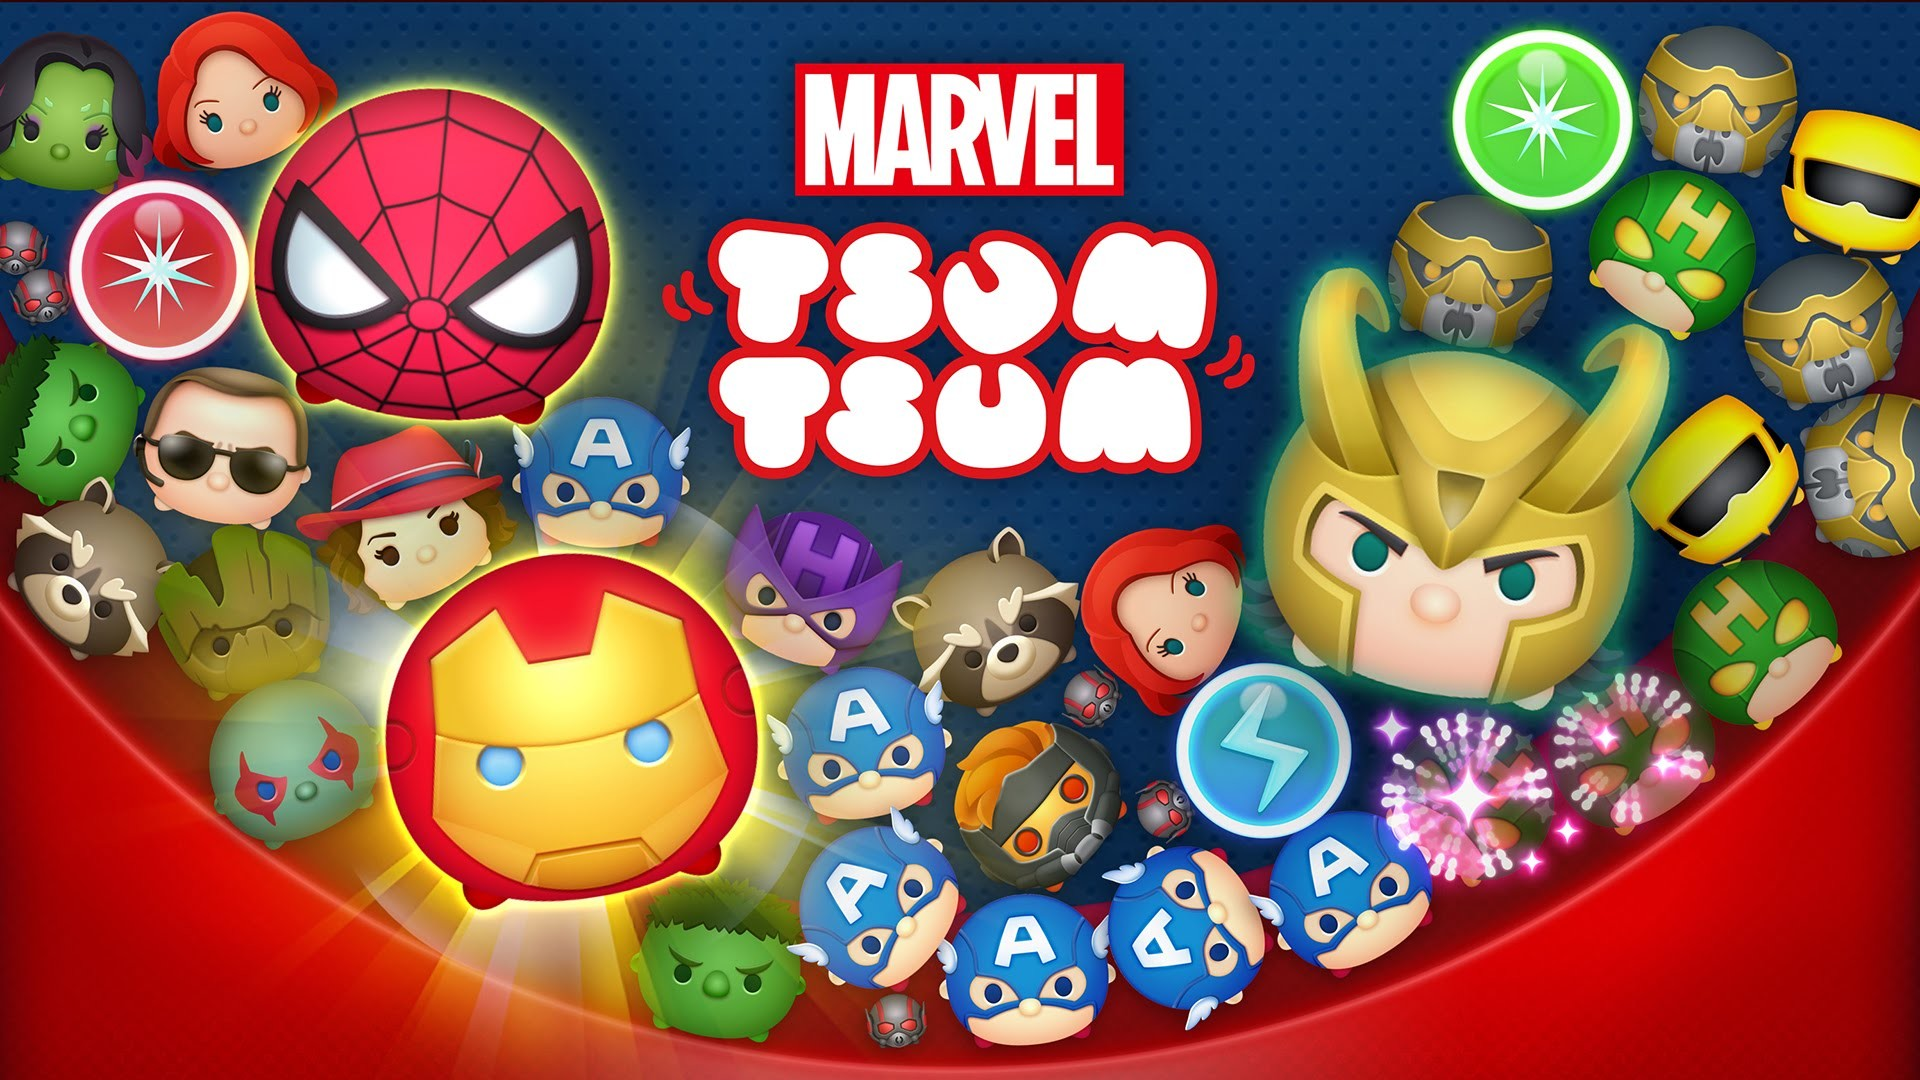 1920x1080 The Marvel universe joins Disney in the cute and cuddly world of Tsum Tsum!  Marvel Tsum Tsum is match-3 puzzle game in the same vein as Disney Tsum Tsum,  ...